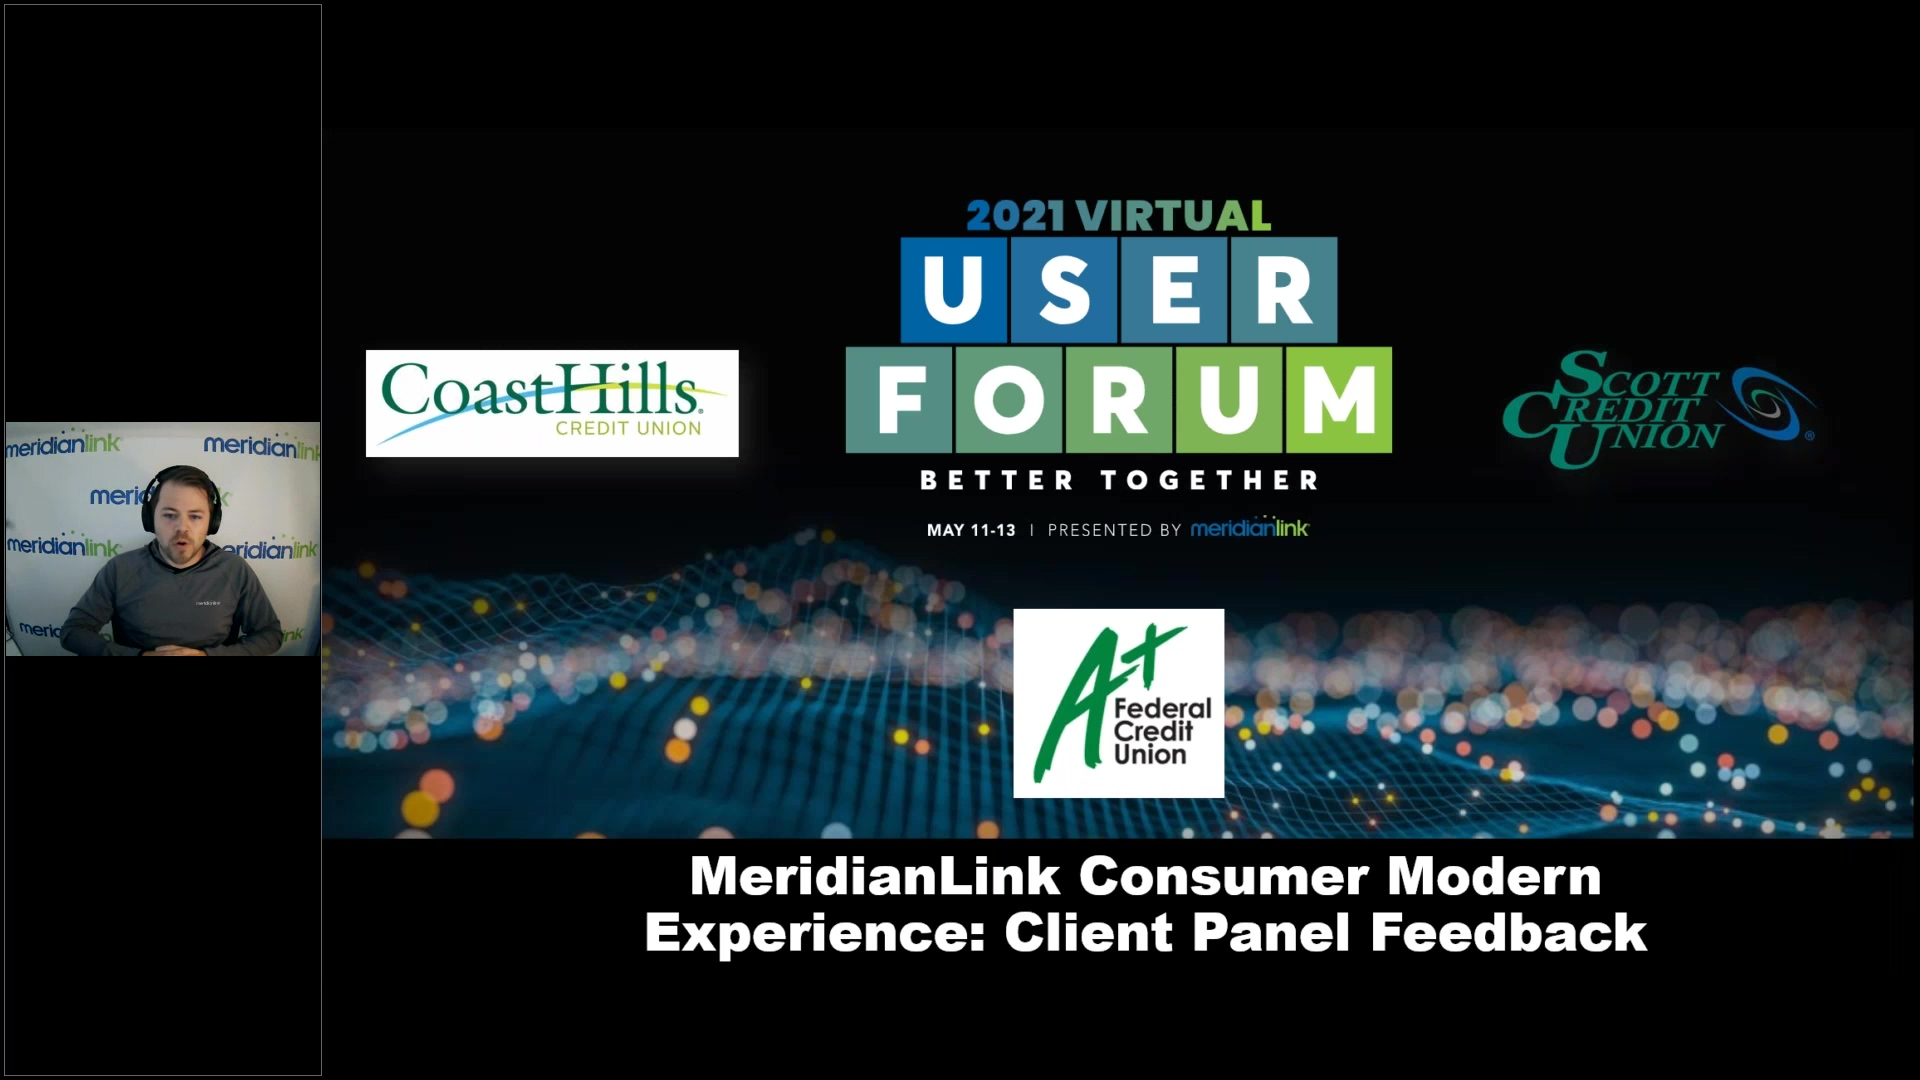 MeridianLink Consumer Modern Experience_ Client Panel Feedback